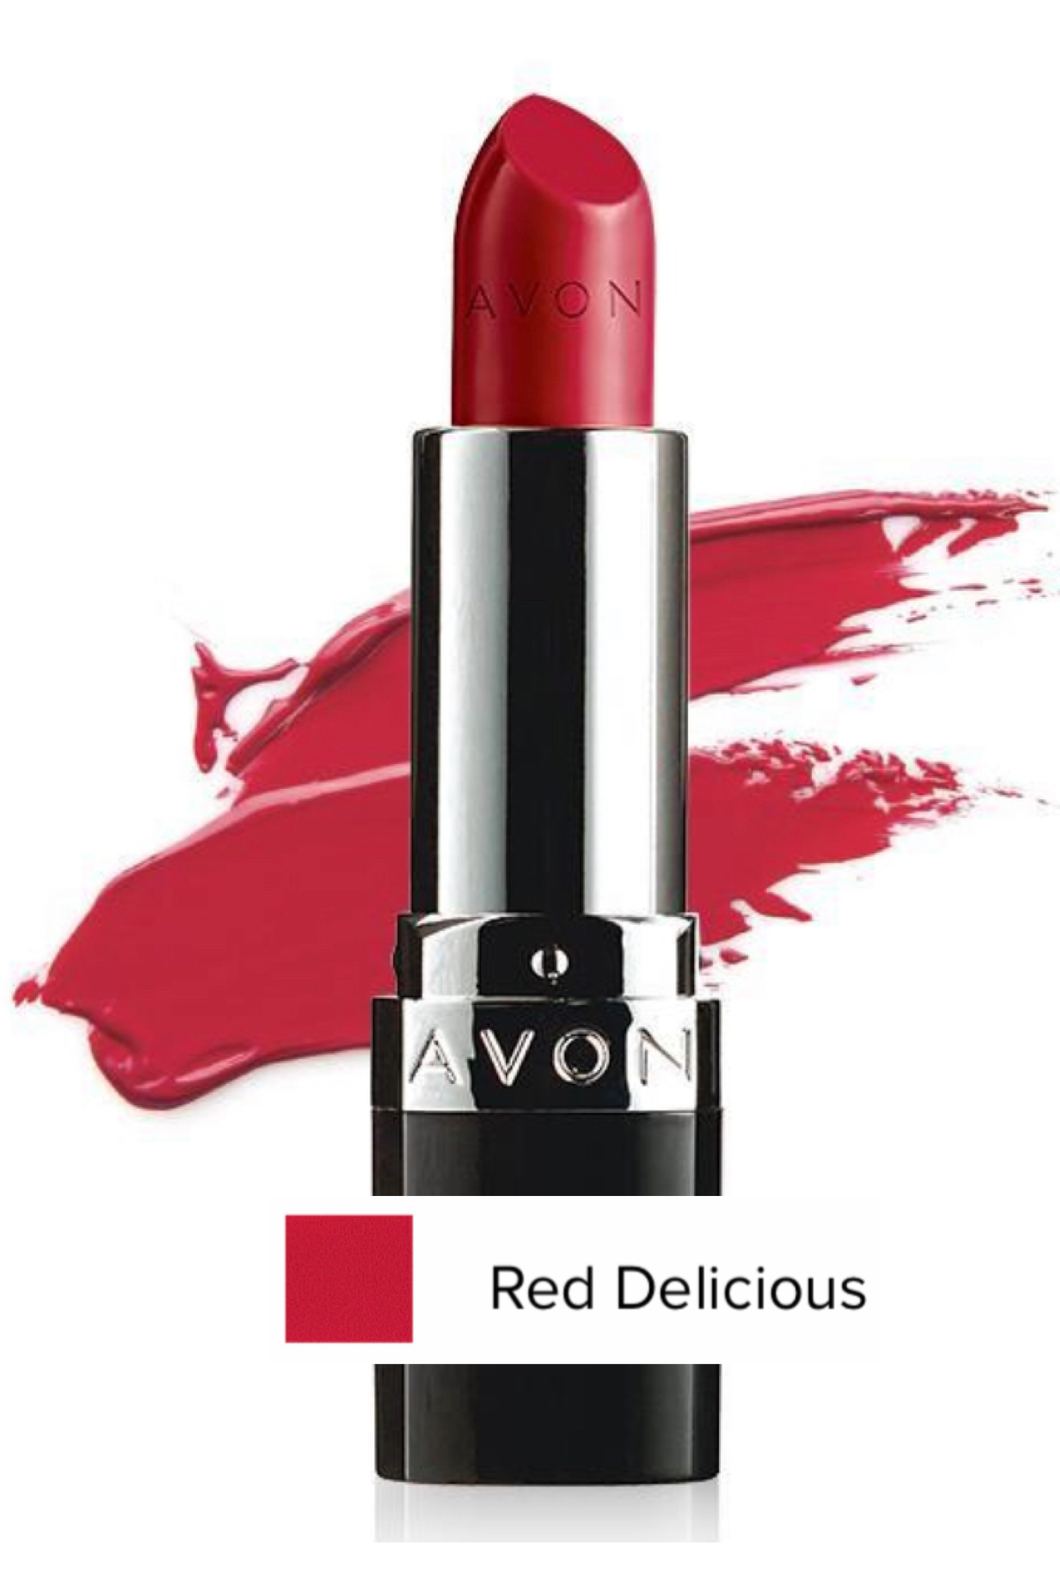 Red Delicious Nourishing Lipstick